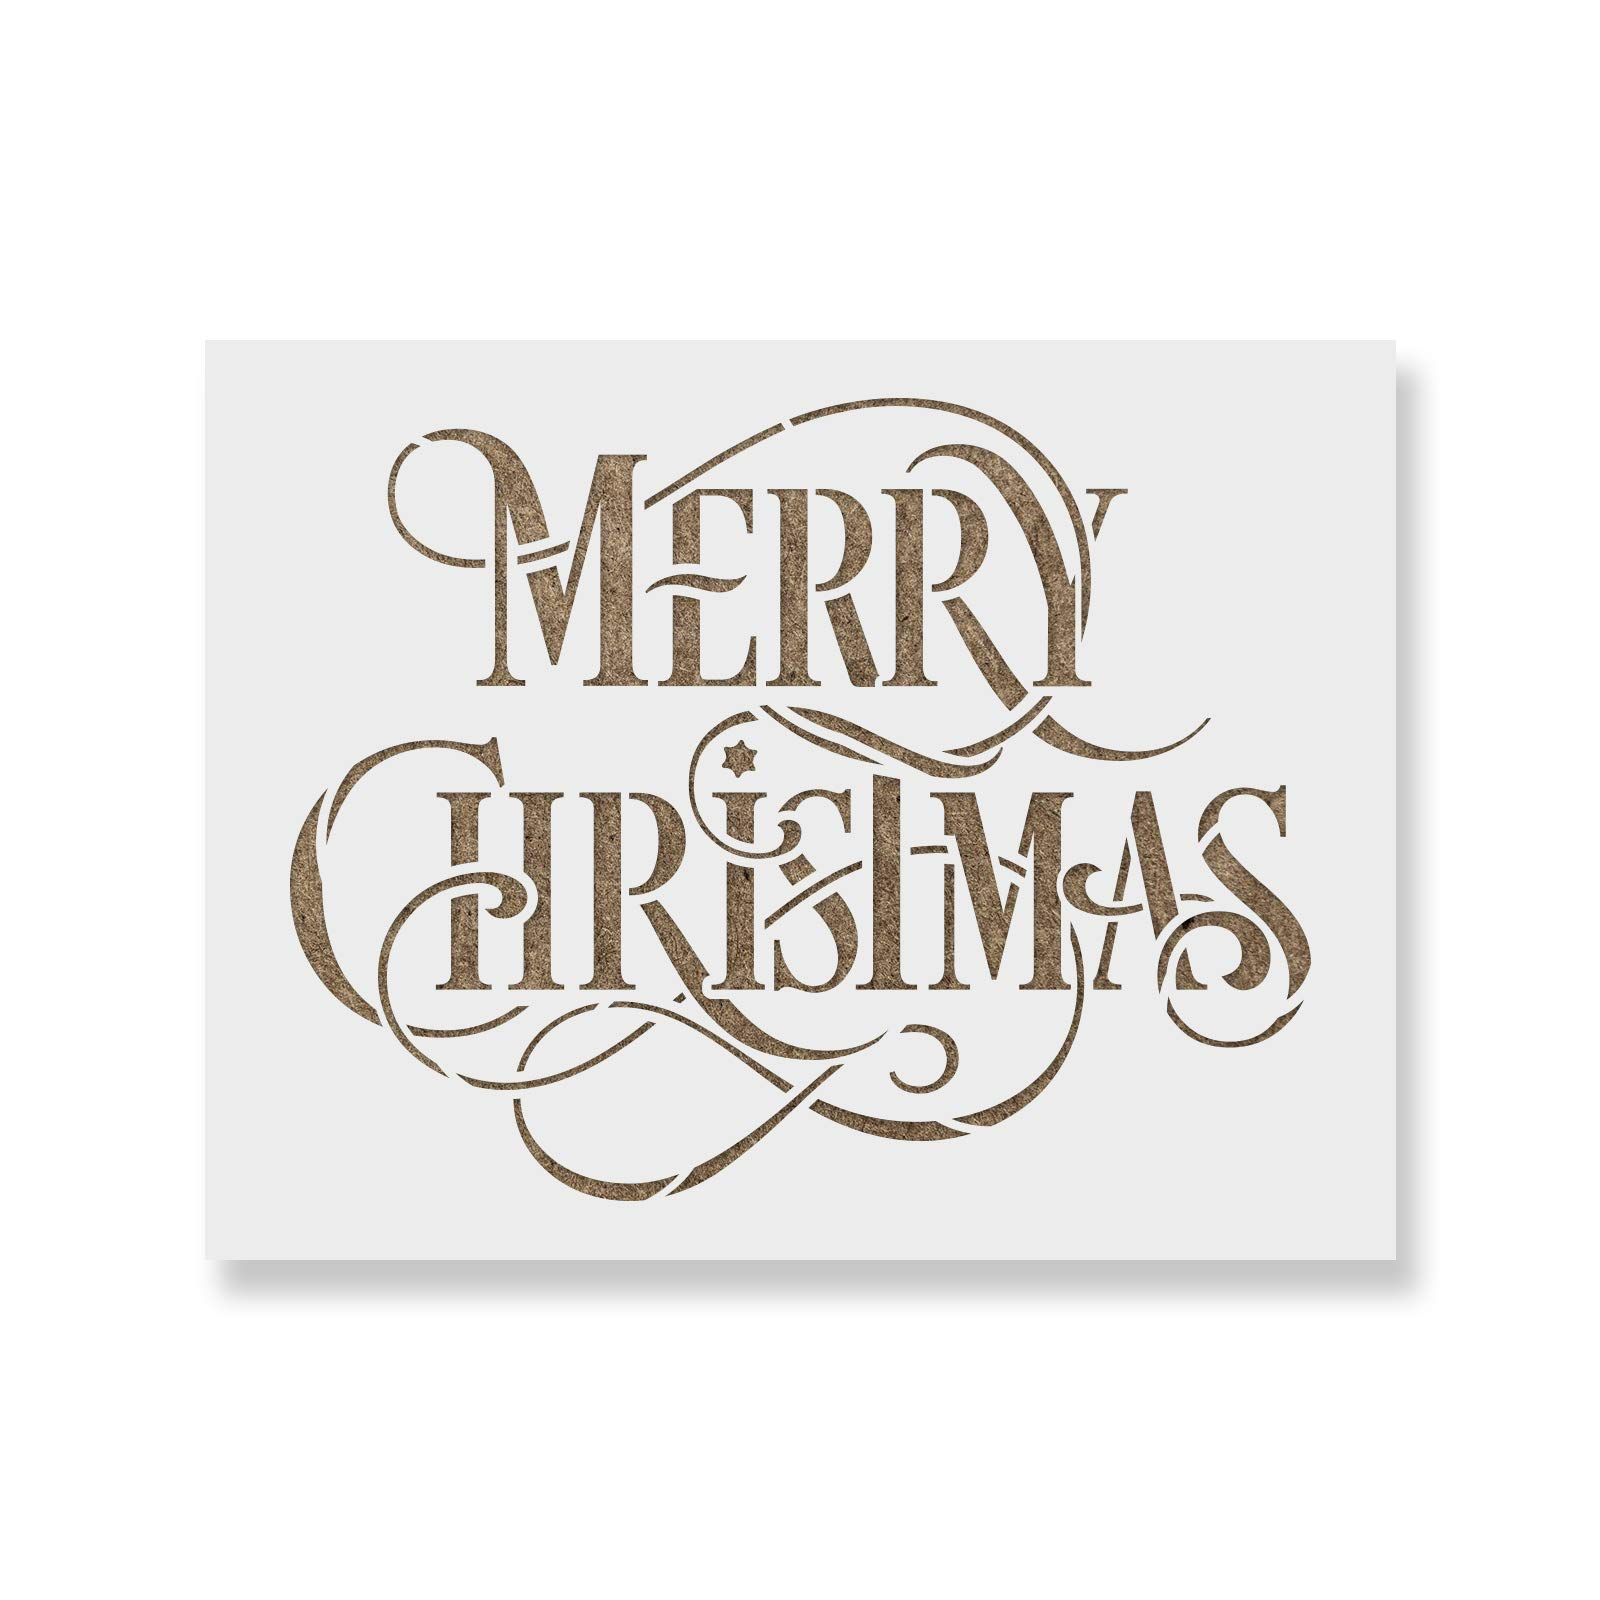 Christmas Stencils For Wood.Merry Christmas Stencil Perfect Stencil For Painting Wood